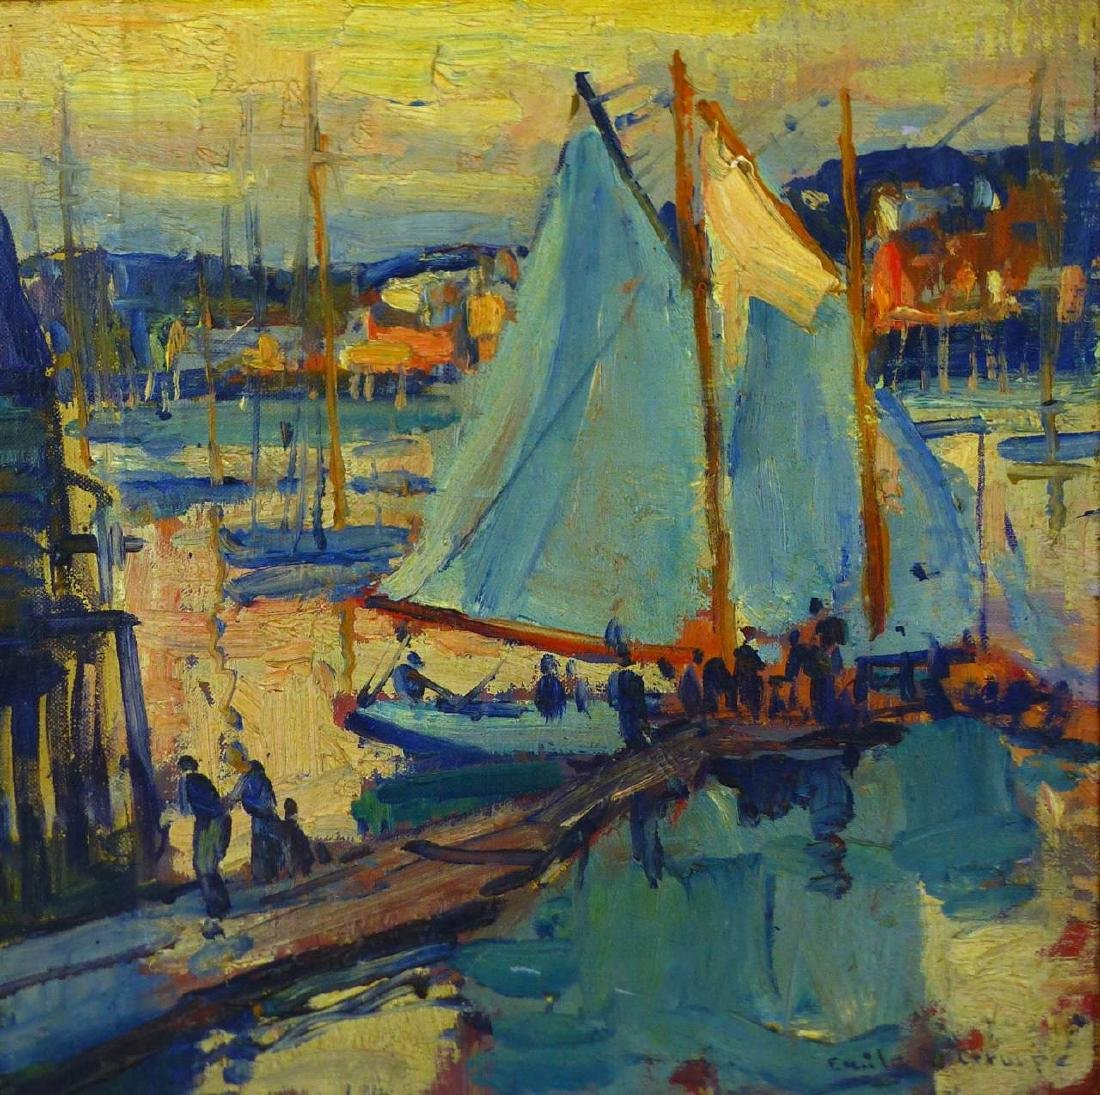 EMILE GRUPPE OIL PAINTING ON BOARD - 2